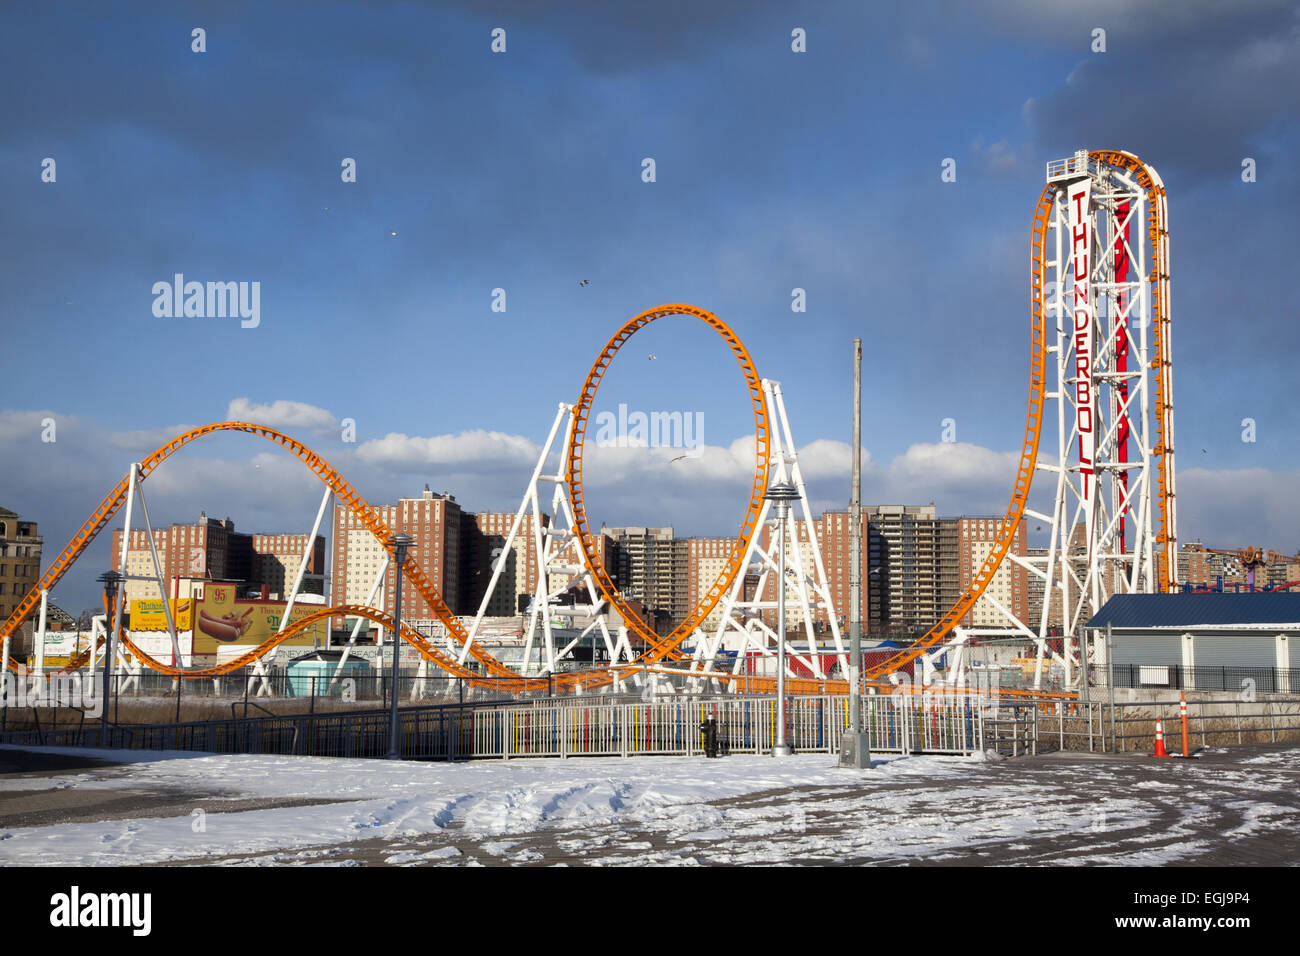 The Thunderbolt Roller Coaster stands like an abstract sculpture against the buildings and sky in winter at Coney - Stock Image